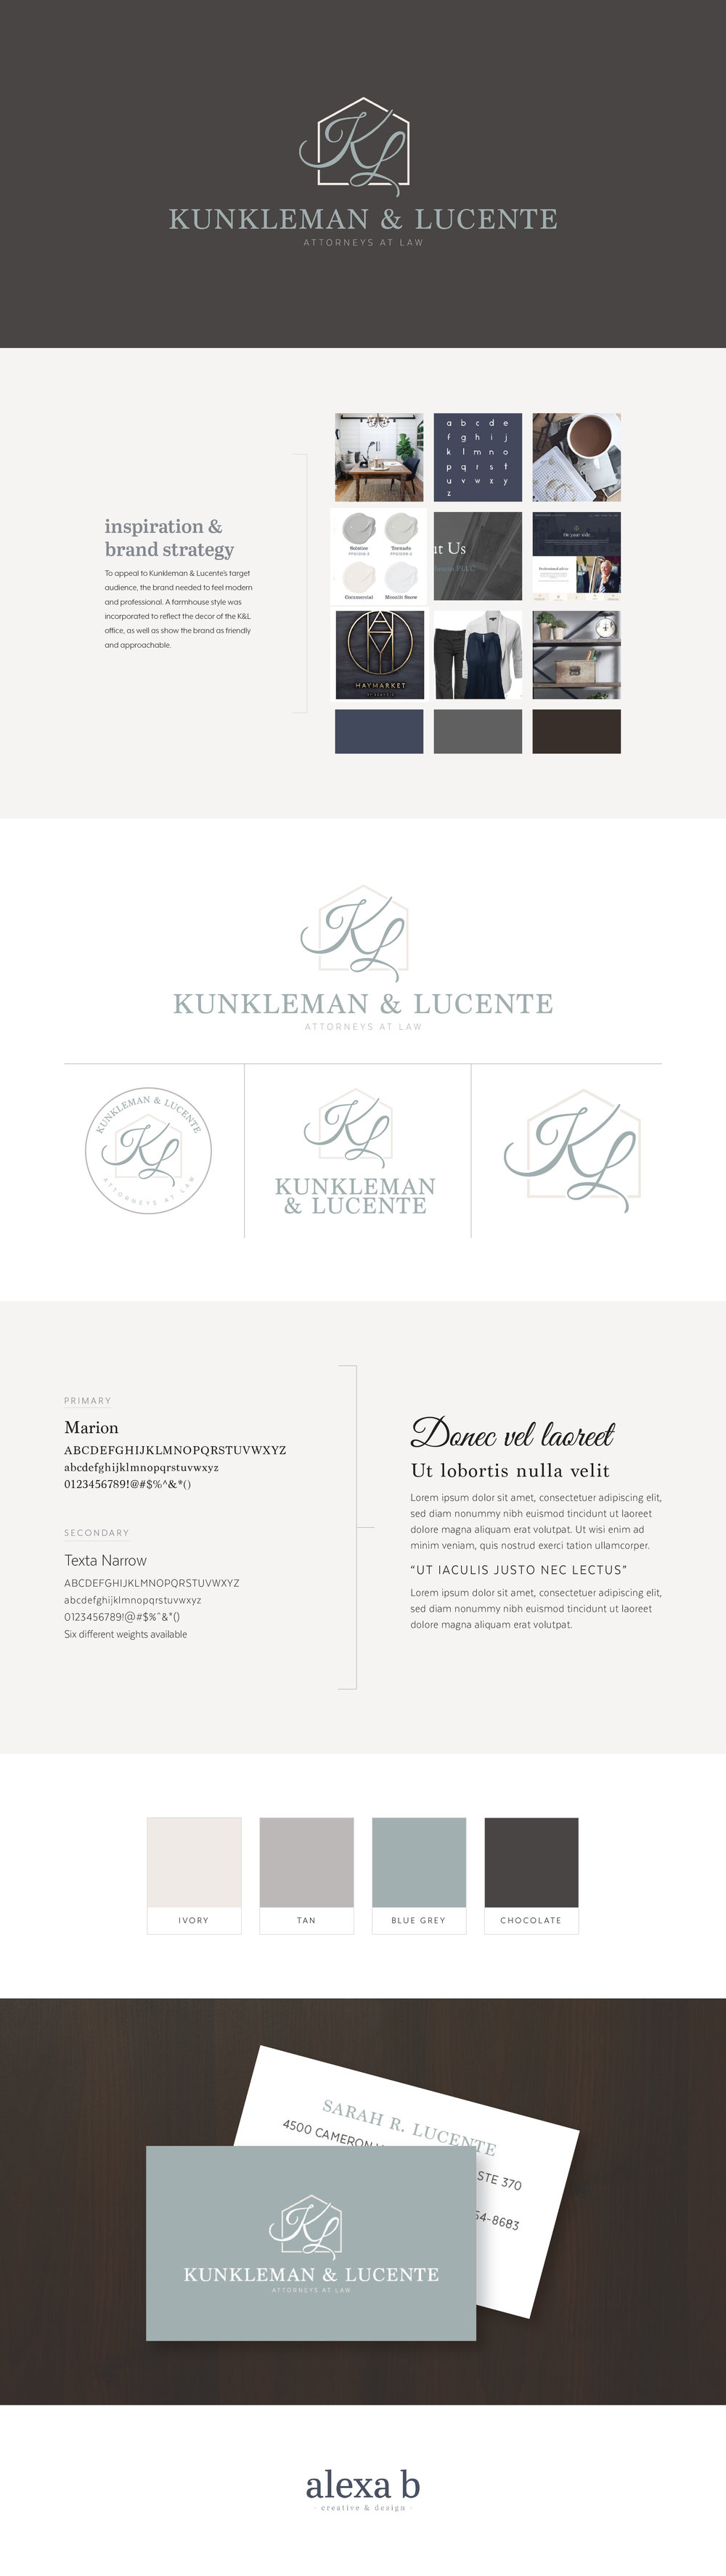 Brand design for Kunkleman & Lucente, a law firm based out of Charlotte, North Carolina. Designed by Alexa B. Creative & Design